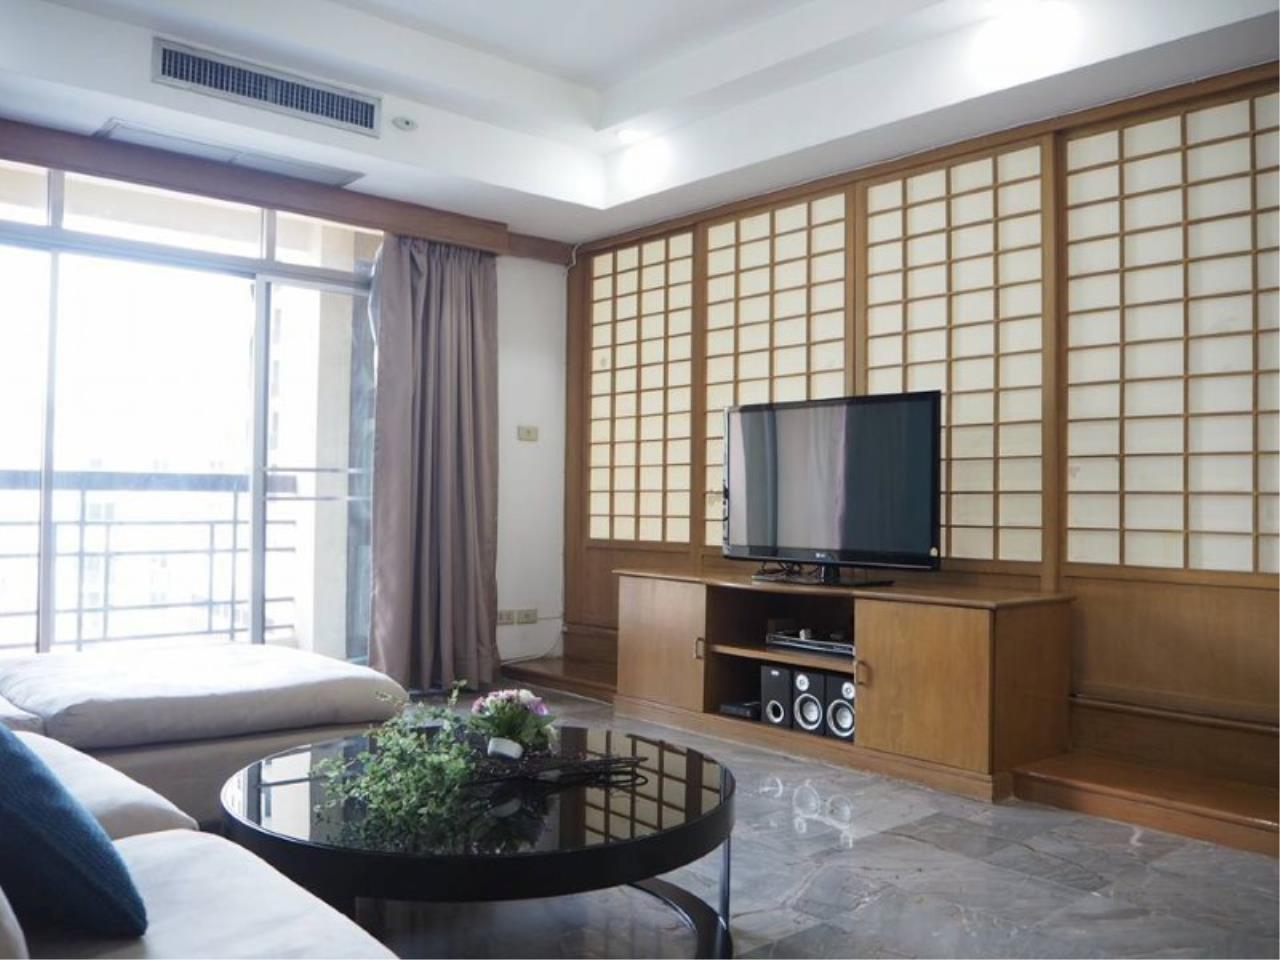 RE/MAX All Star Realty Agency's Royal Castle 4bed 4bath 202sqm for rent (BTS Phrom Phong) 3